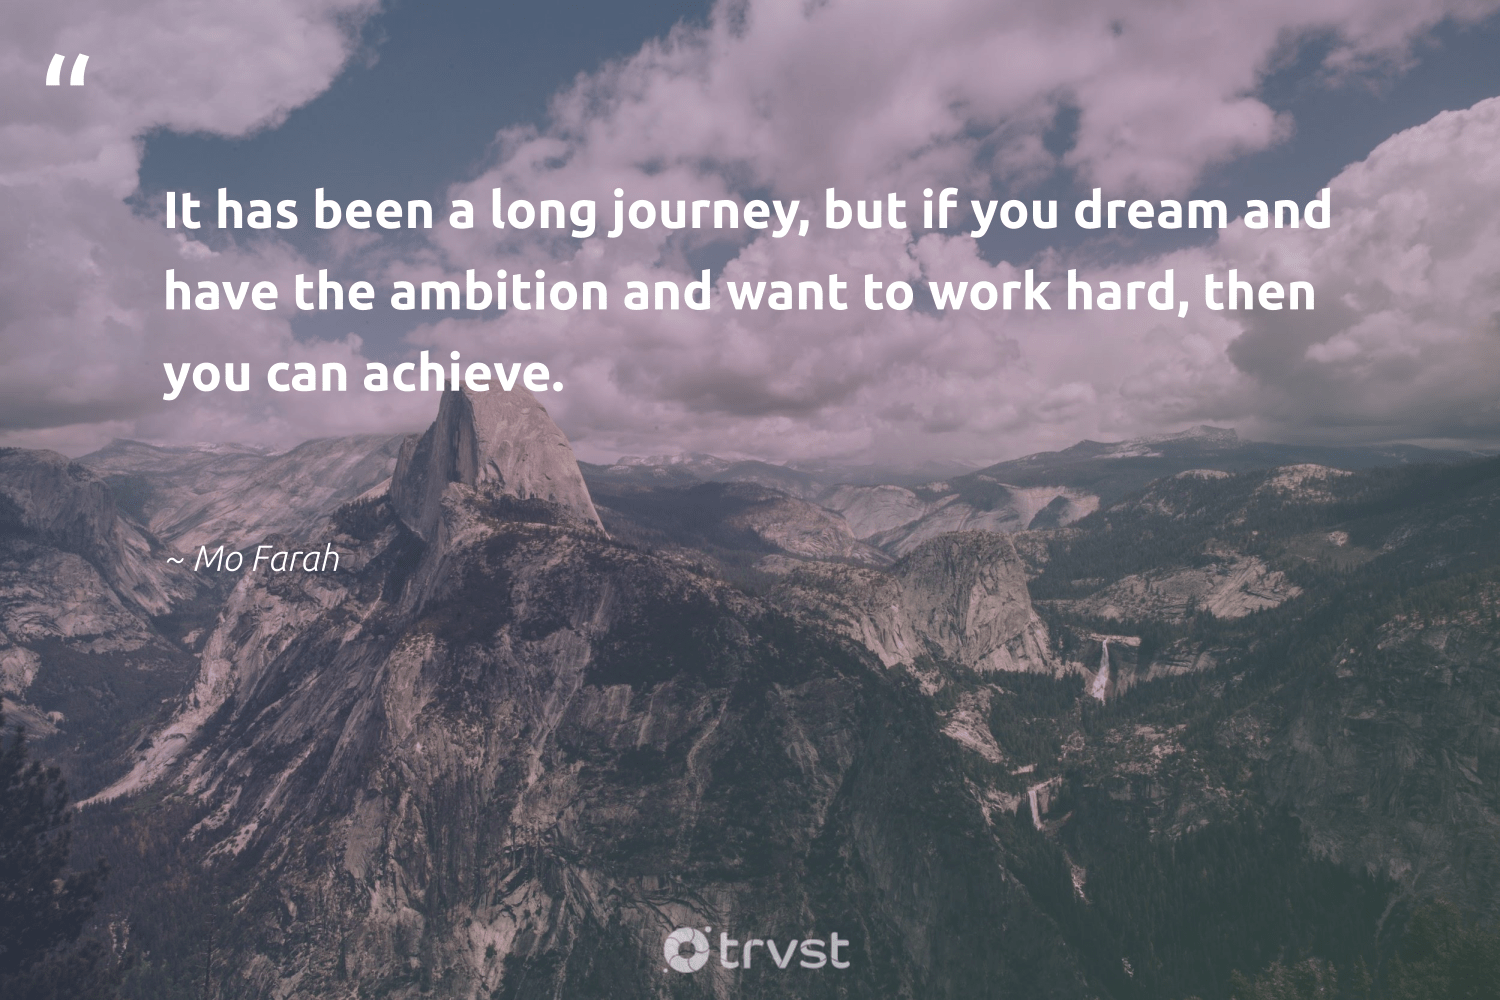 """It has been a long journey, but if you dream and have the ambition and want to work hard, then you can achieve.""  - Mo Farah #trvst #quotes #begreat #bethechange #softskills #socialchange #futureofwork #impact #nevergiveup #planetearthfirst #dotherightthing #socialimpact"